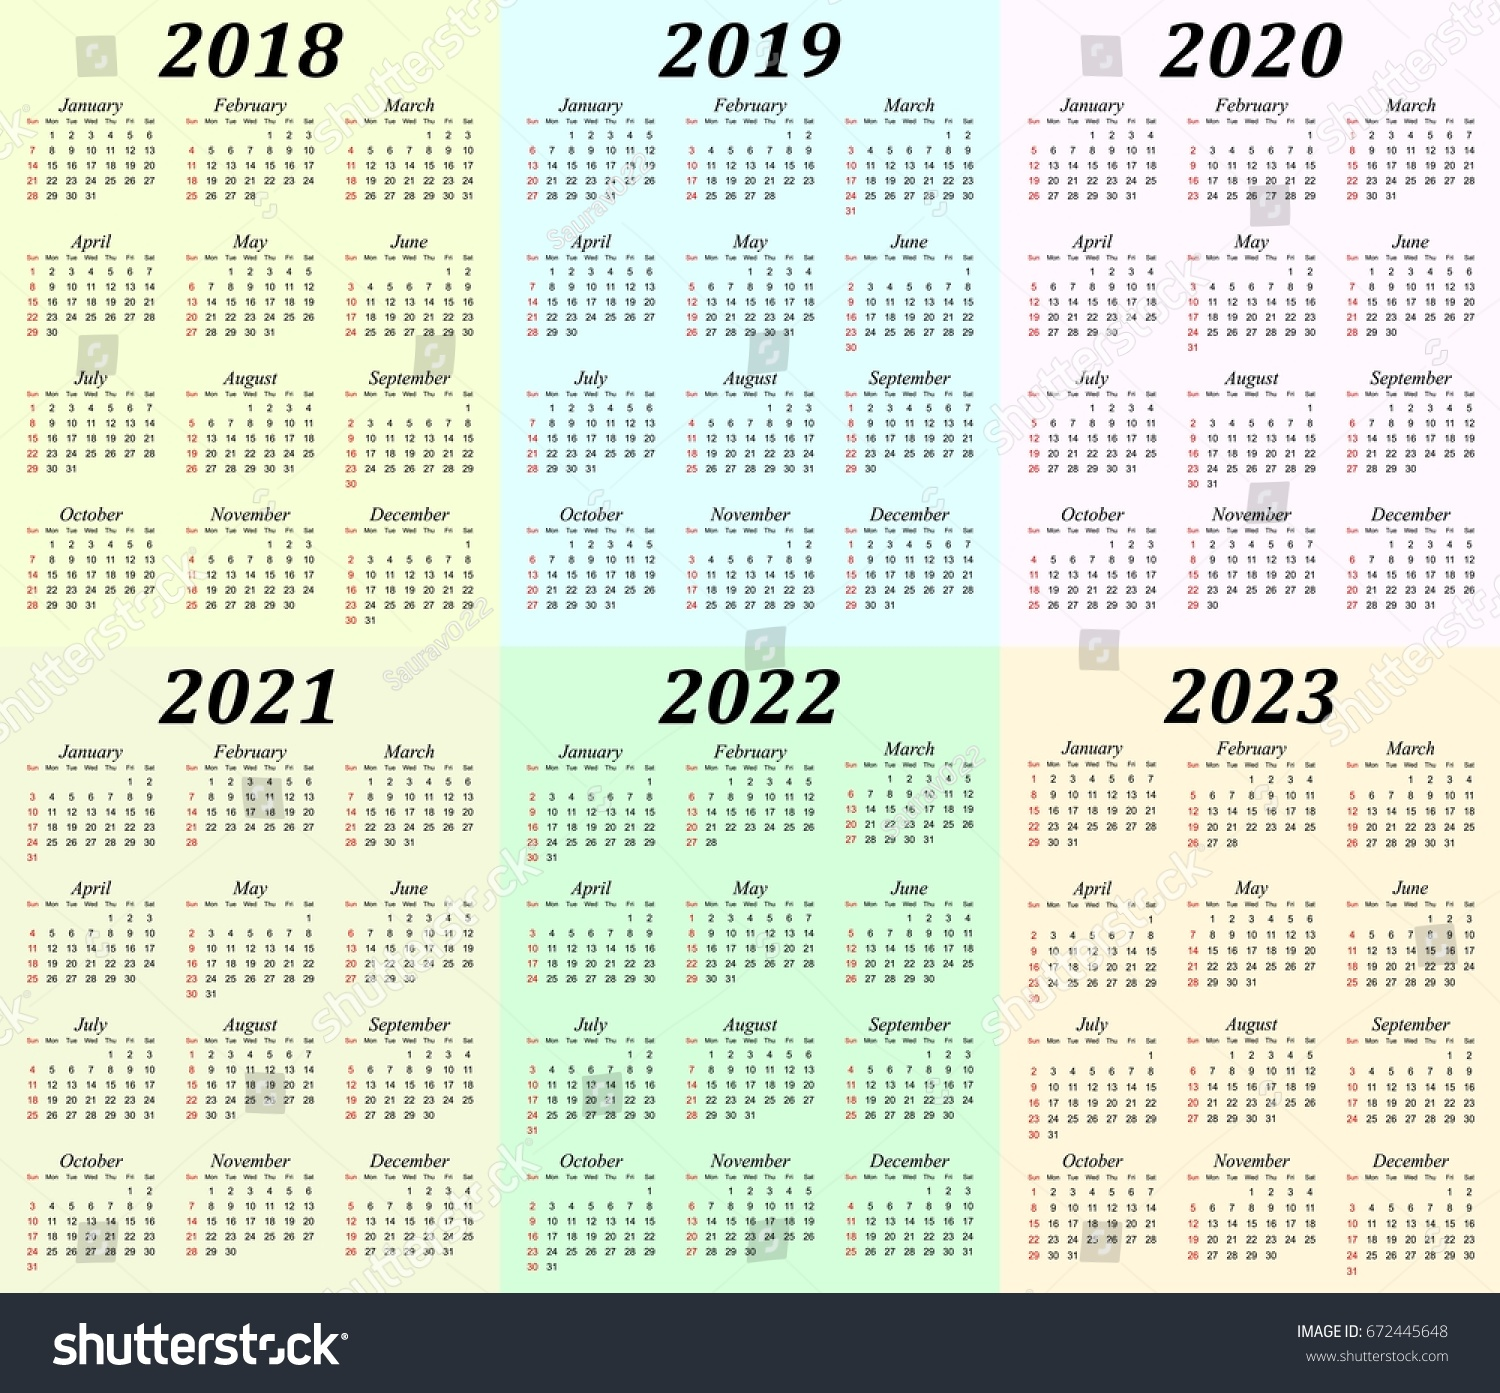 5 Year Calendar 2019 To 2023 With Free Printable Blank PDF Template April 2018